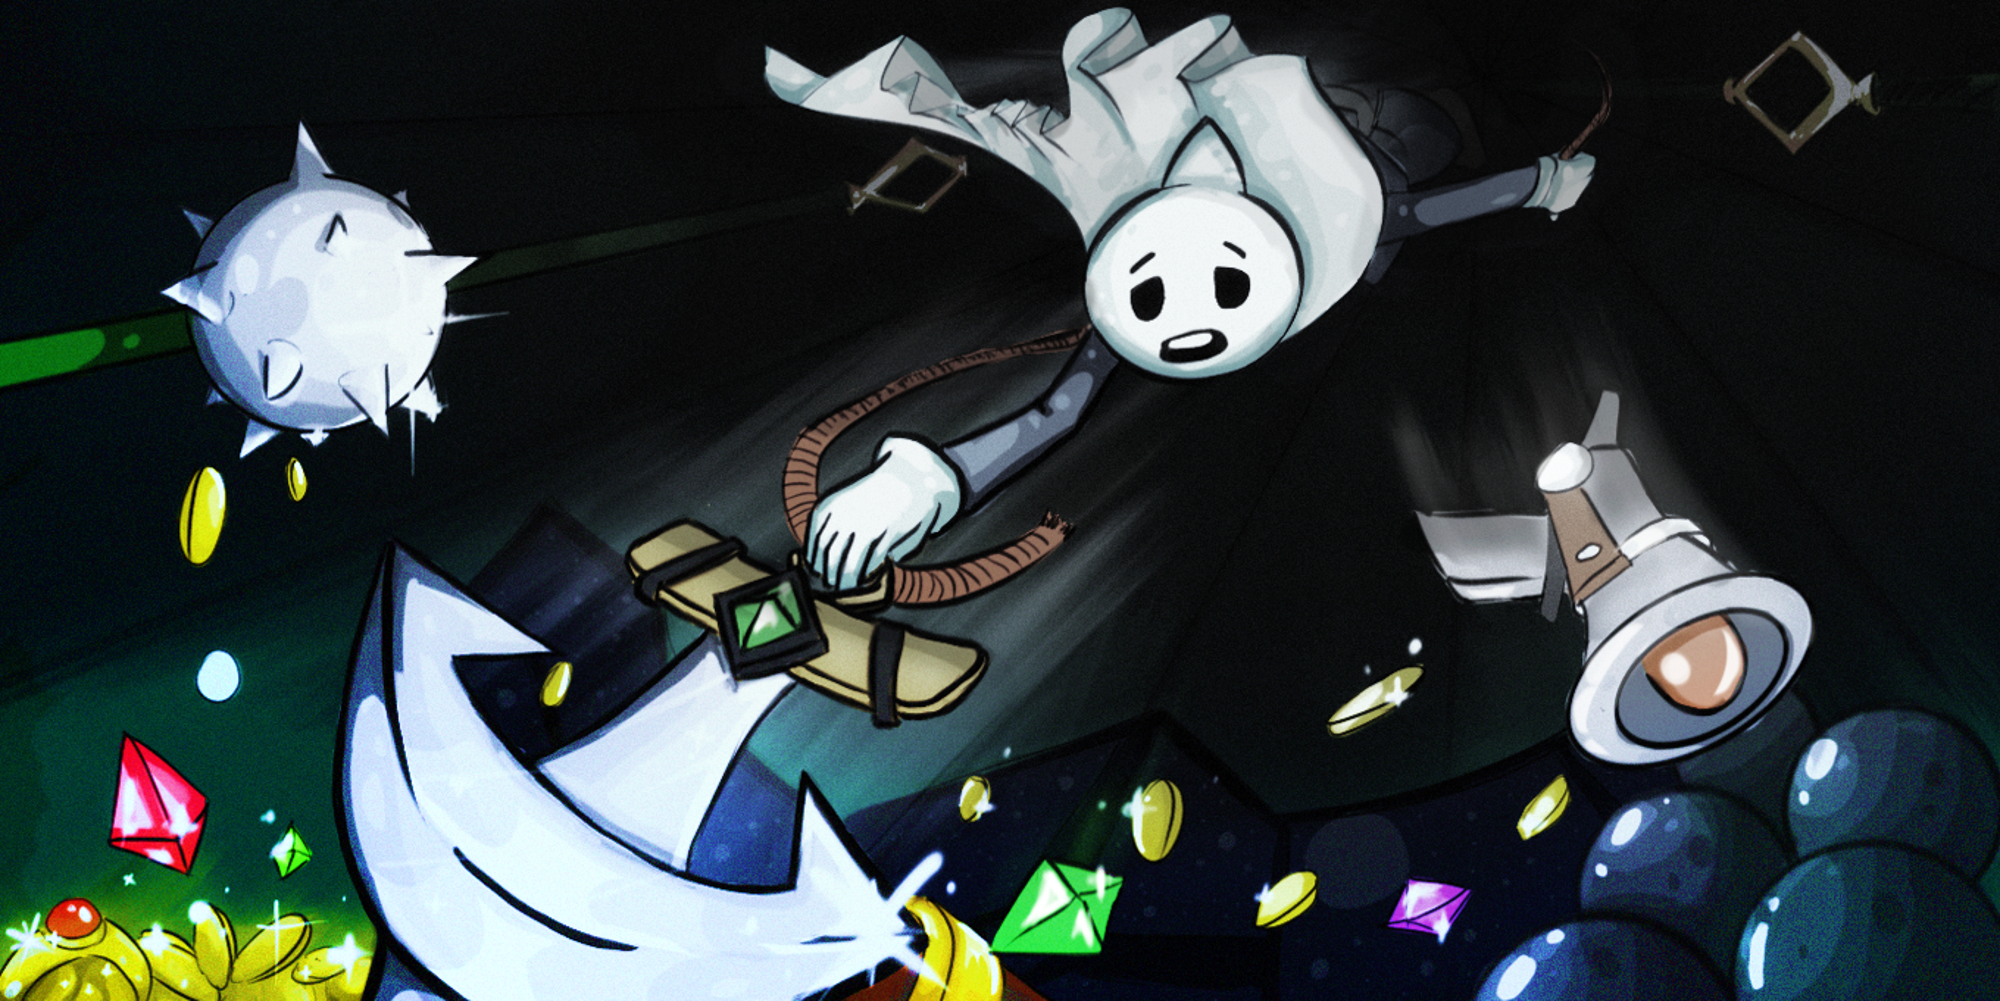 [stay puft]